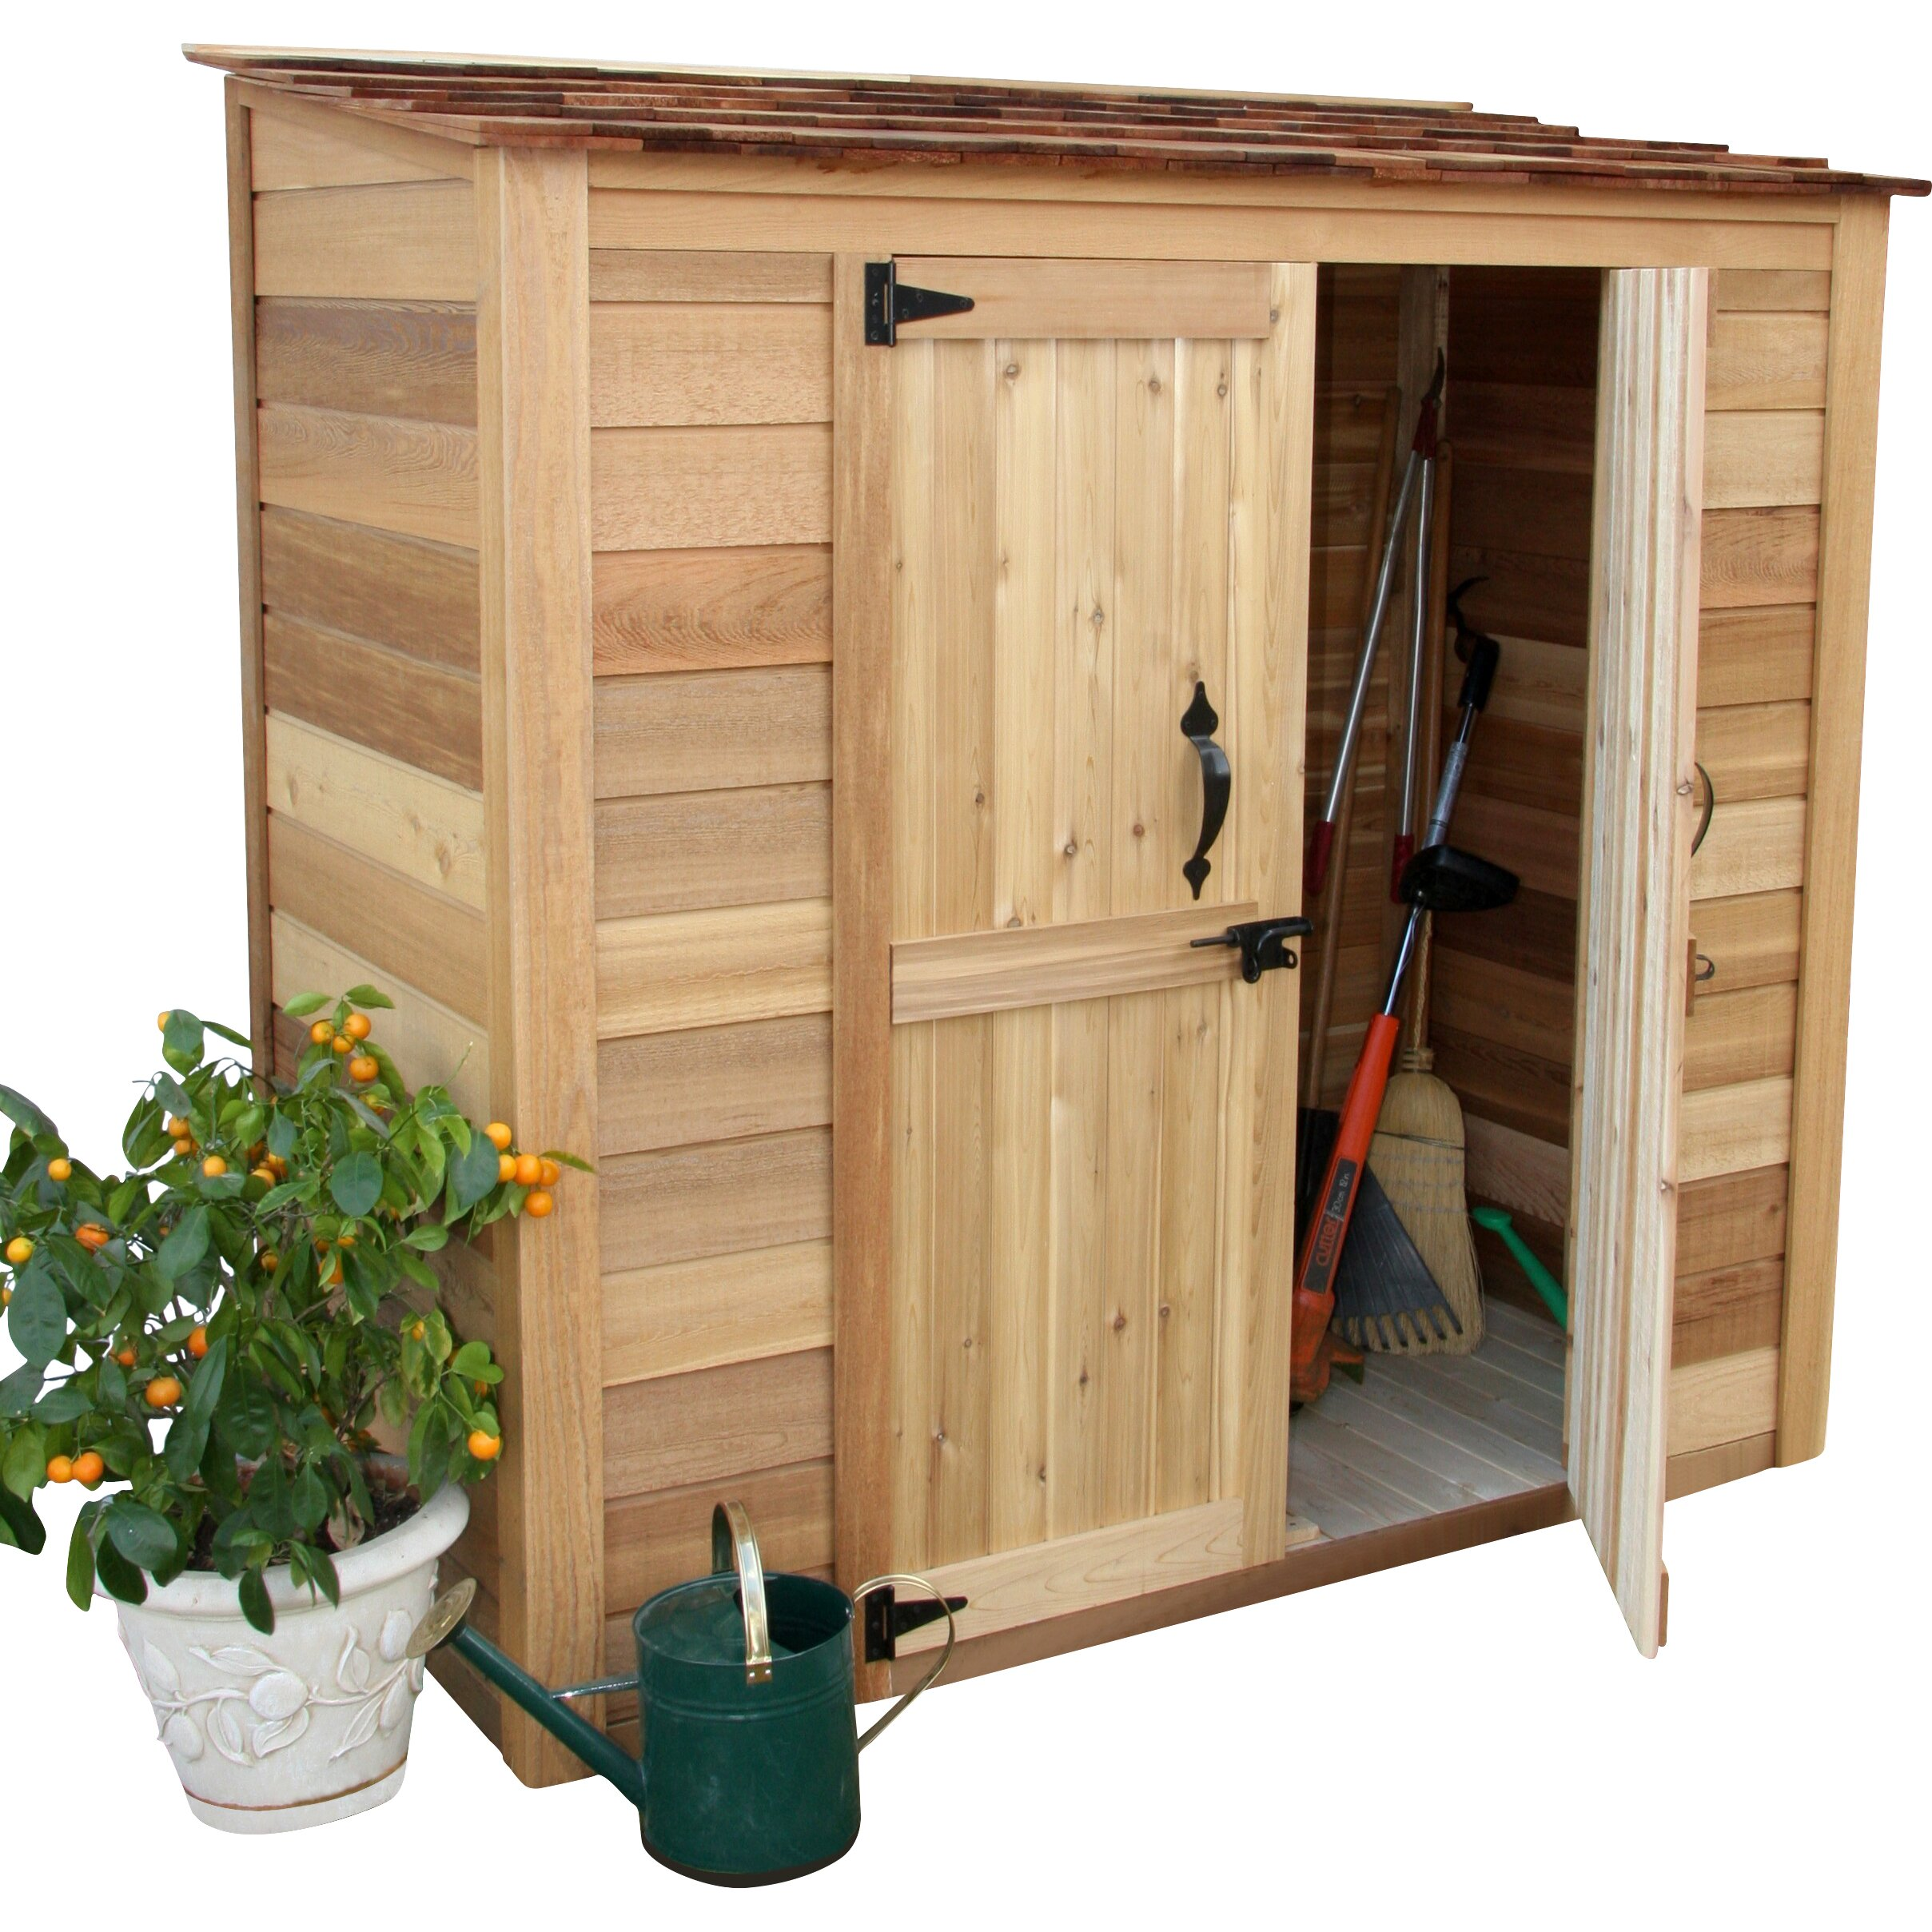 Outdoor living today garden chalet 6 ft w x 3 ft d wood for Outdoor wood shed